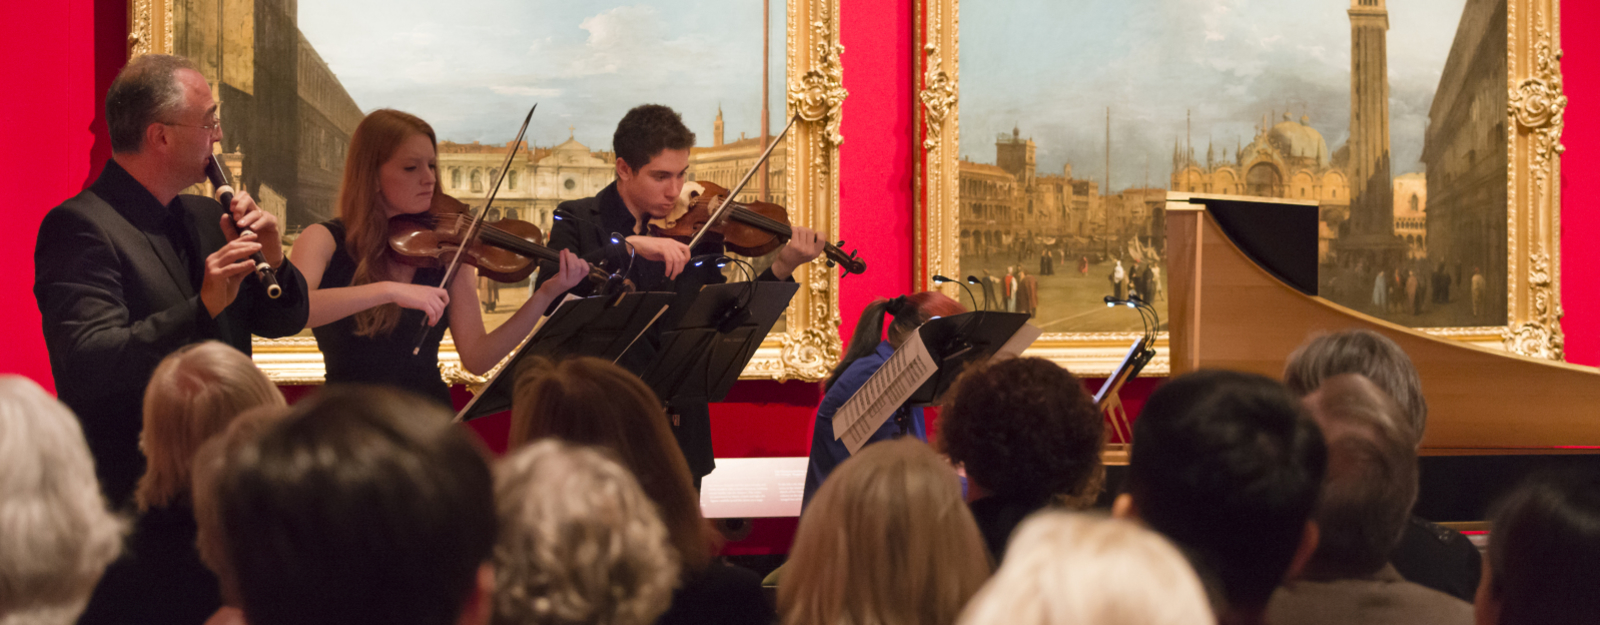 Royal College of Music students performing